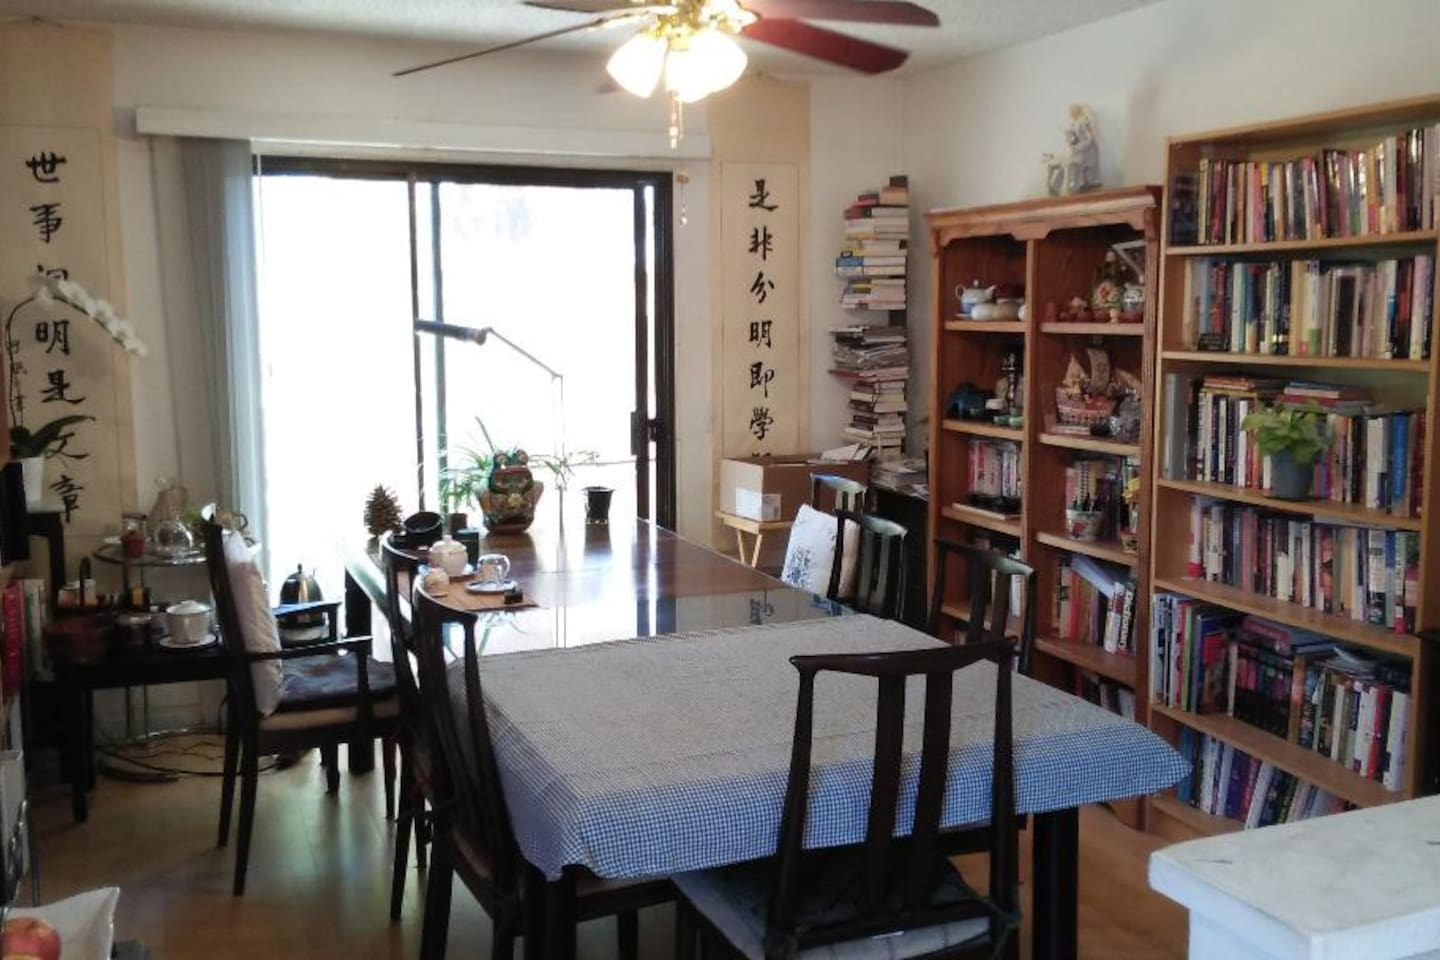 Dining for guests and Tea Room with book shelves, for my reading and writing.